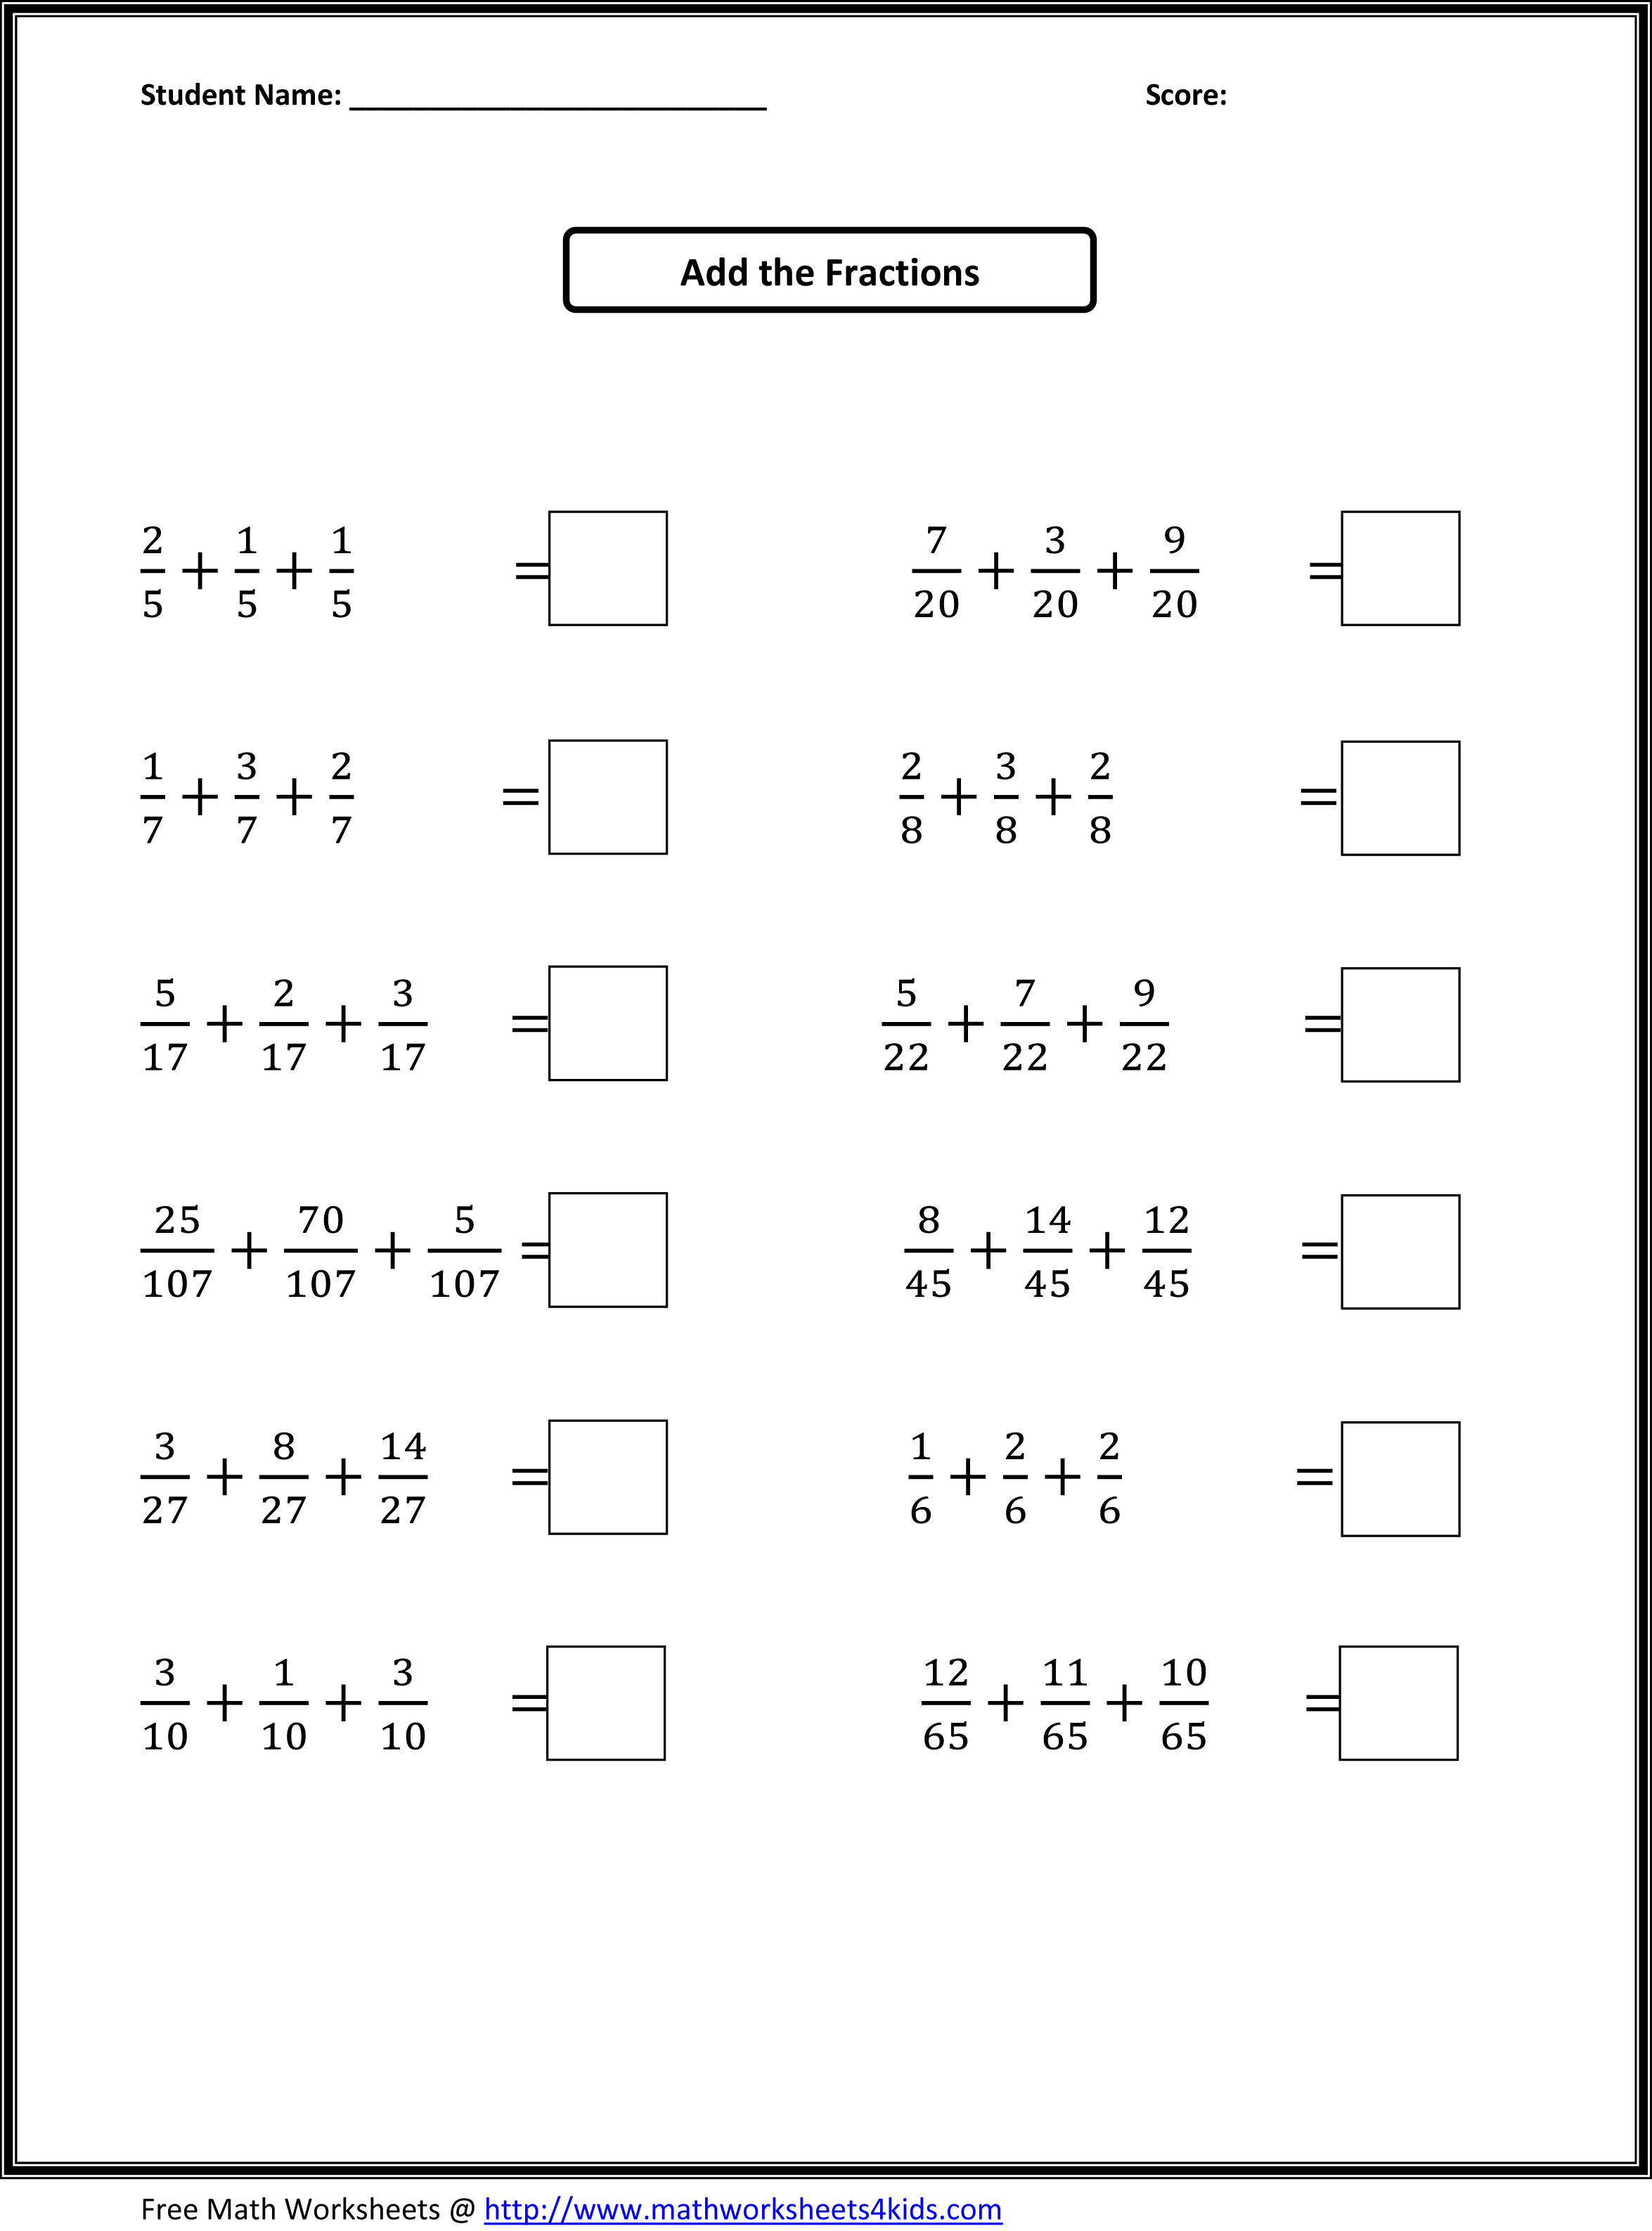 Fraction Worksheets 4th Grade – Fraction Problems with Answers Worksheet